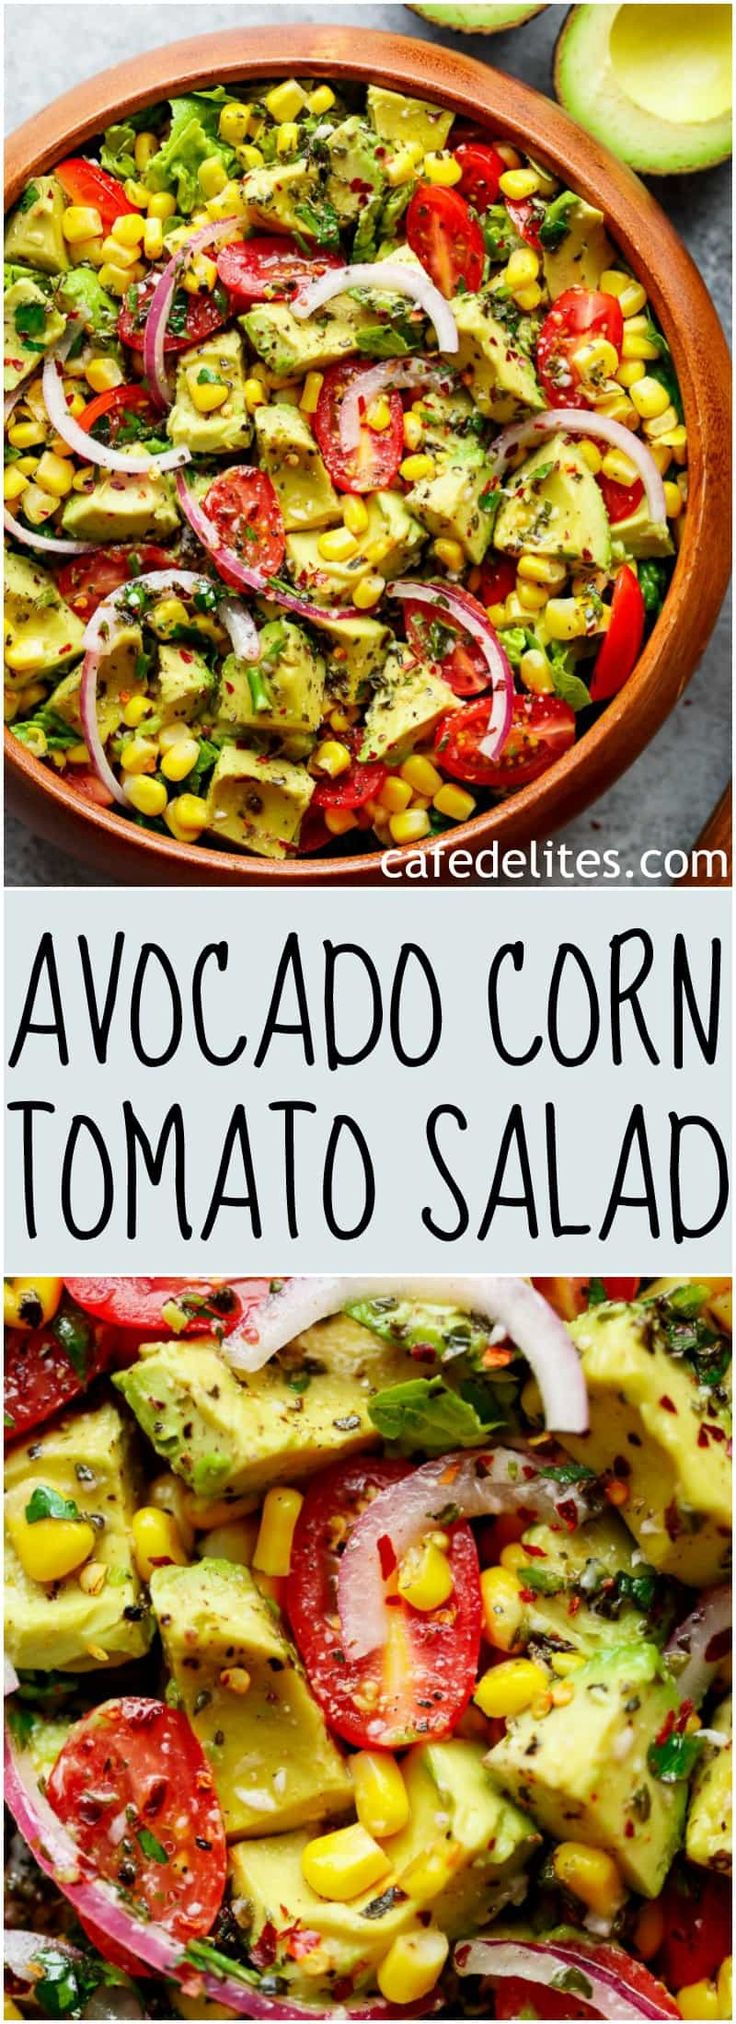 Avocado Corn Tomato Salad with a lime juice dressing is delicious served on its own, or as a side that easily pairs with anything on your plate!   https://cafedelites.com